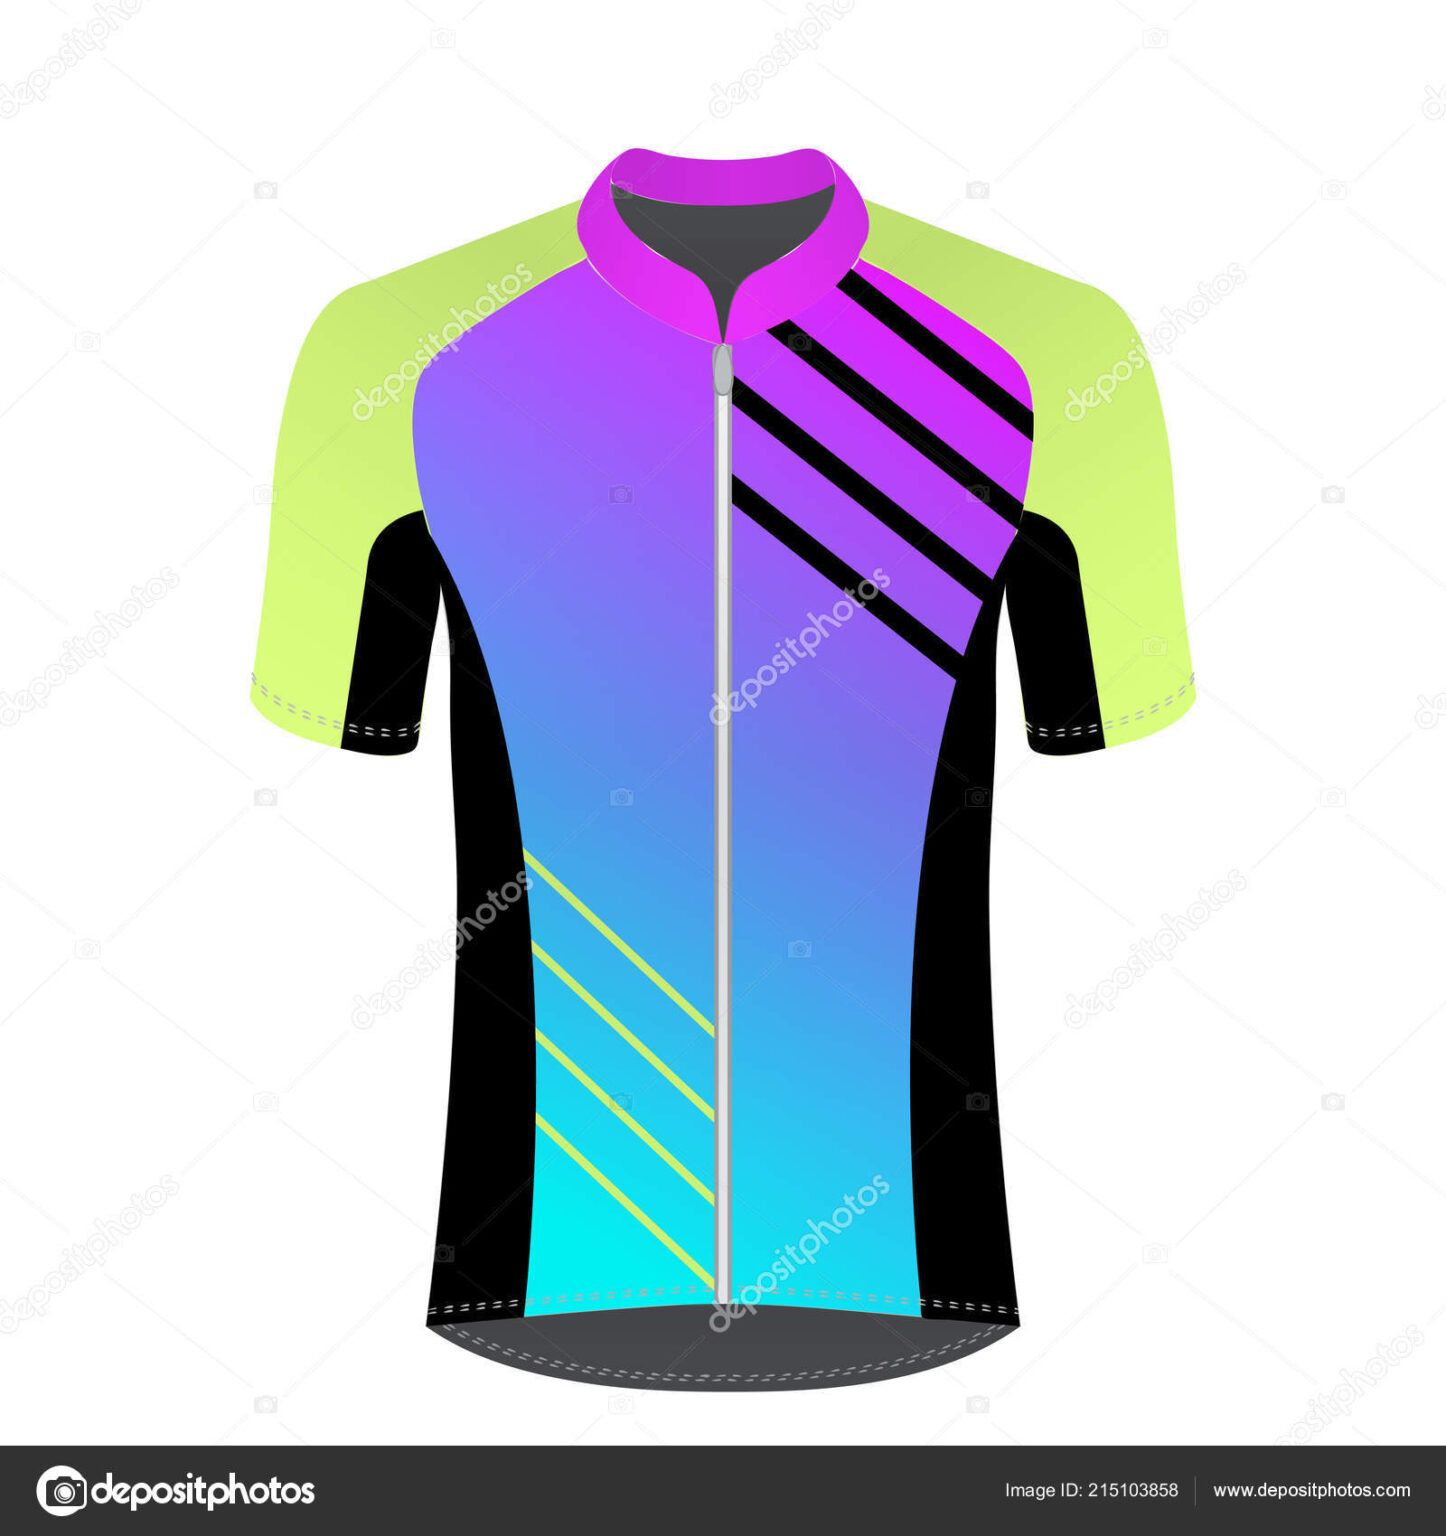 Download Cycling Jersey Mockup Shirt Sport Design Template Road Throughout Blank Cycling Jersey Template Womens Cycling Clothes Sports Design Cycling Outfit